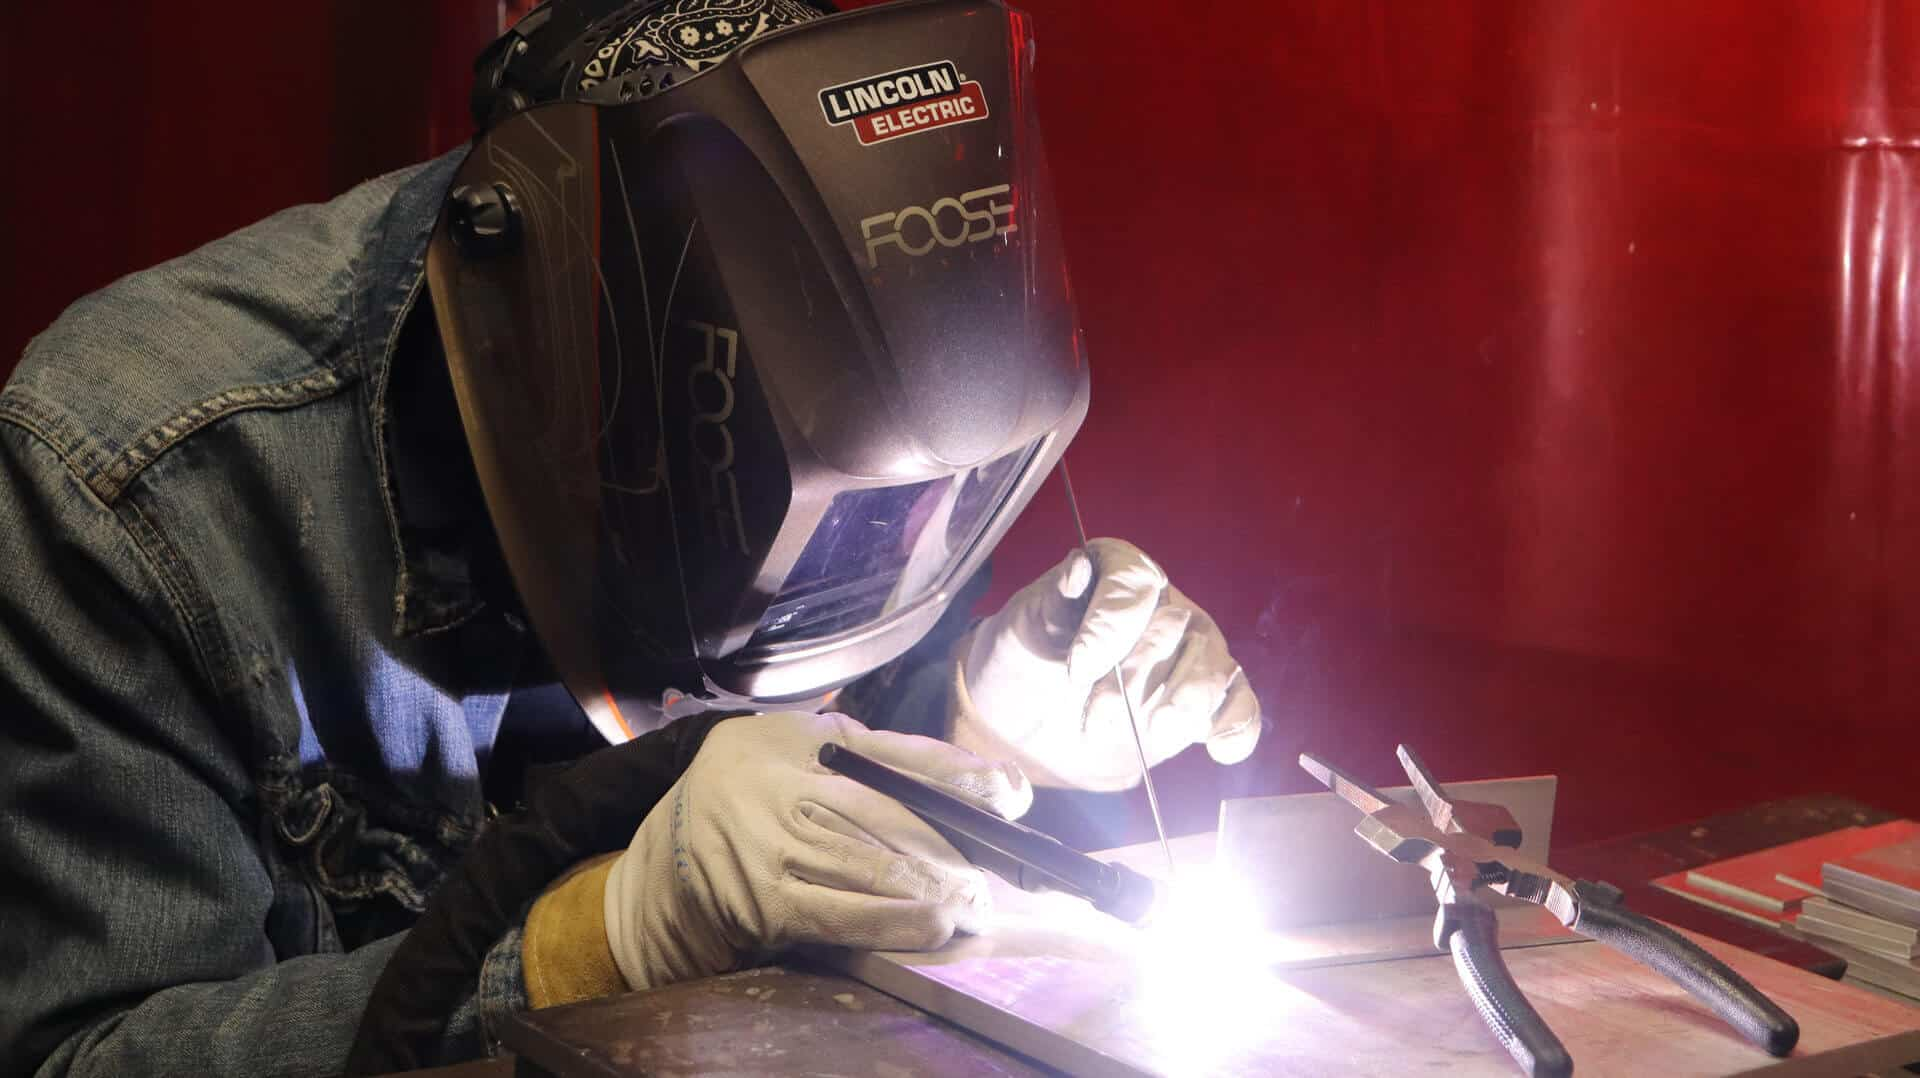 welding is one of the highest paying skilled trades